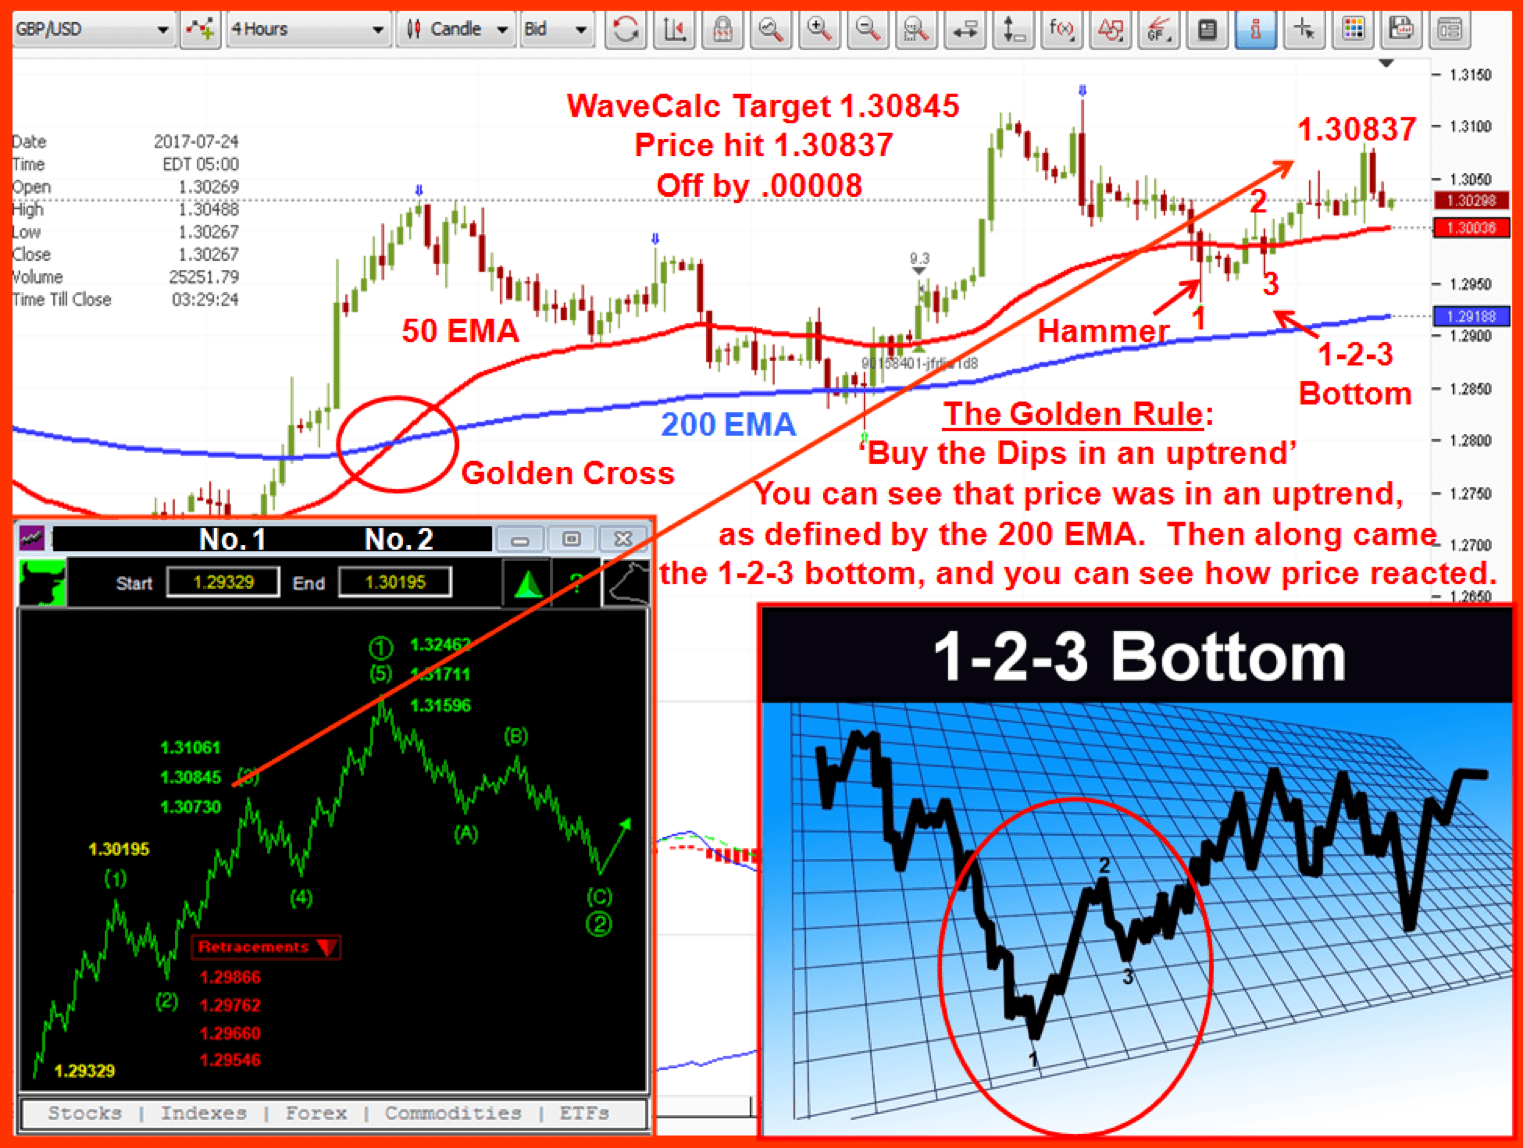 GBPUSD chart with 1-2-3 bottom, price projection, WaveCalc calculator, & image of 1-2-3 bottom.